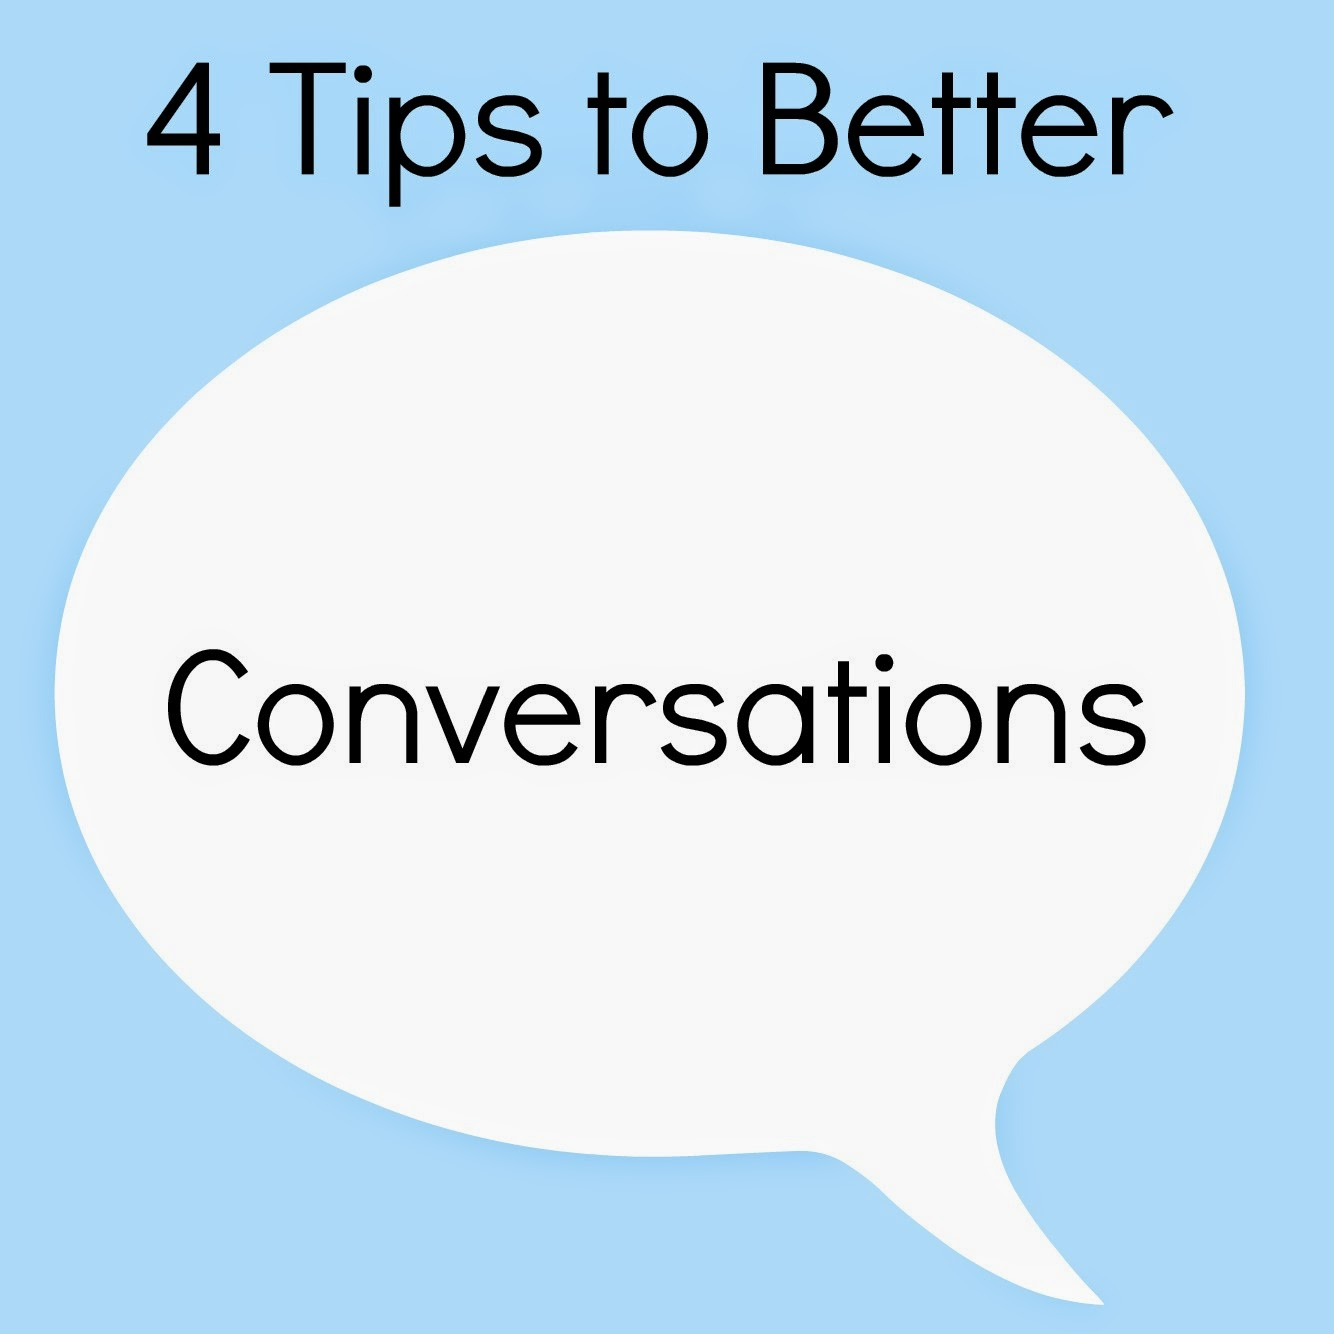 Advice, conversations, friendships, Relationships, tips for better conversation, how to talk to people